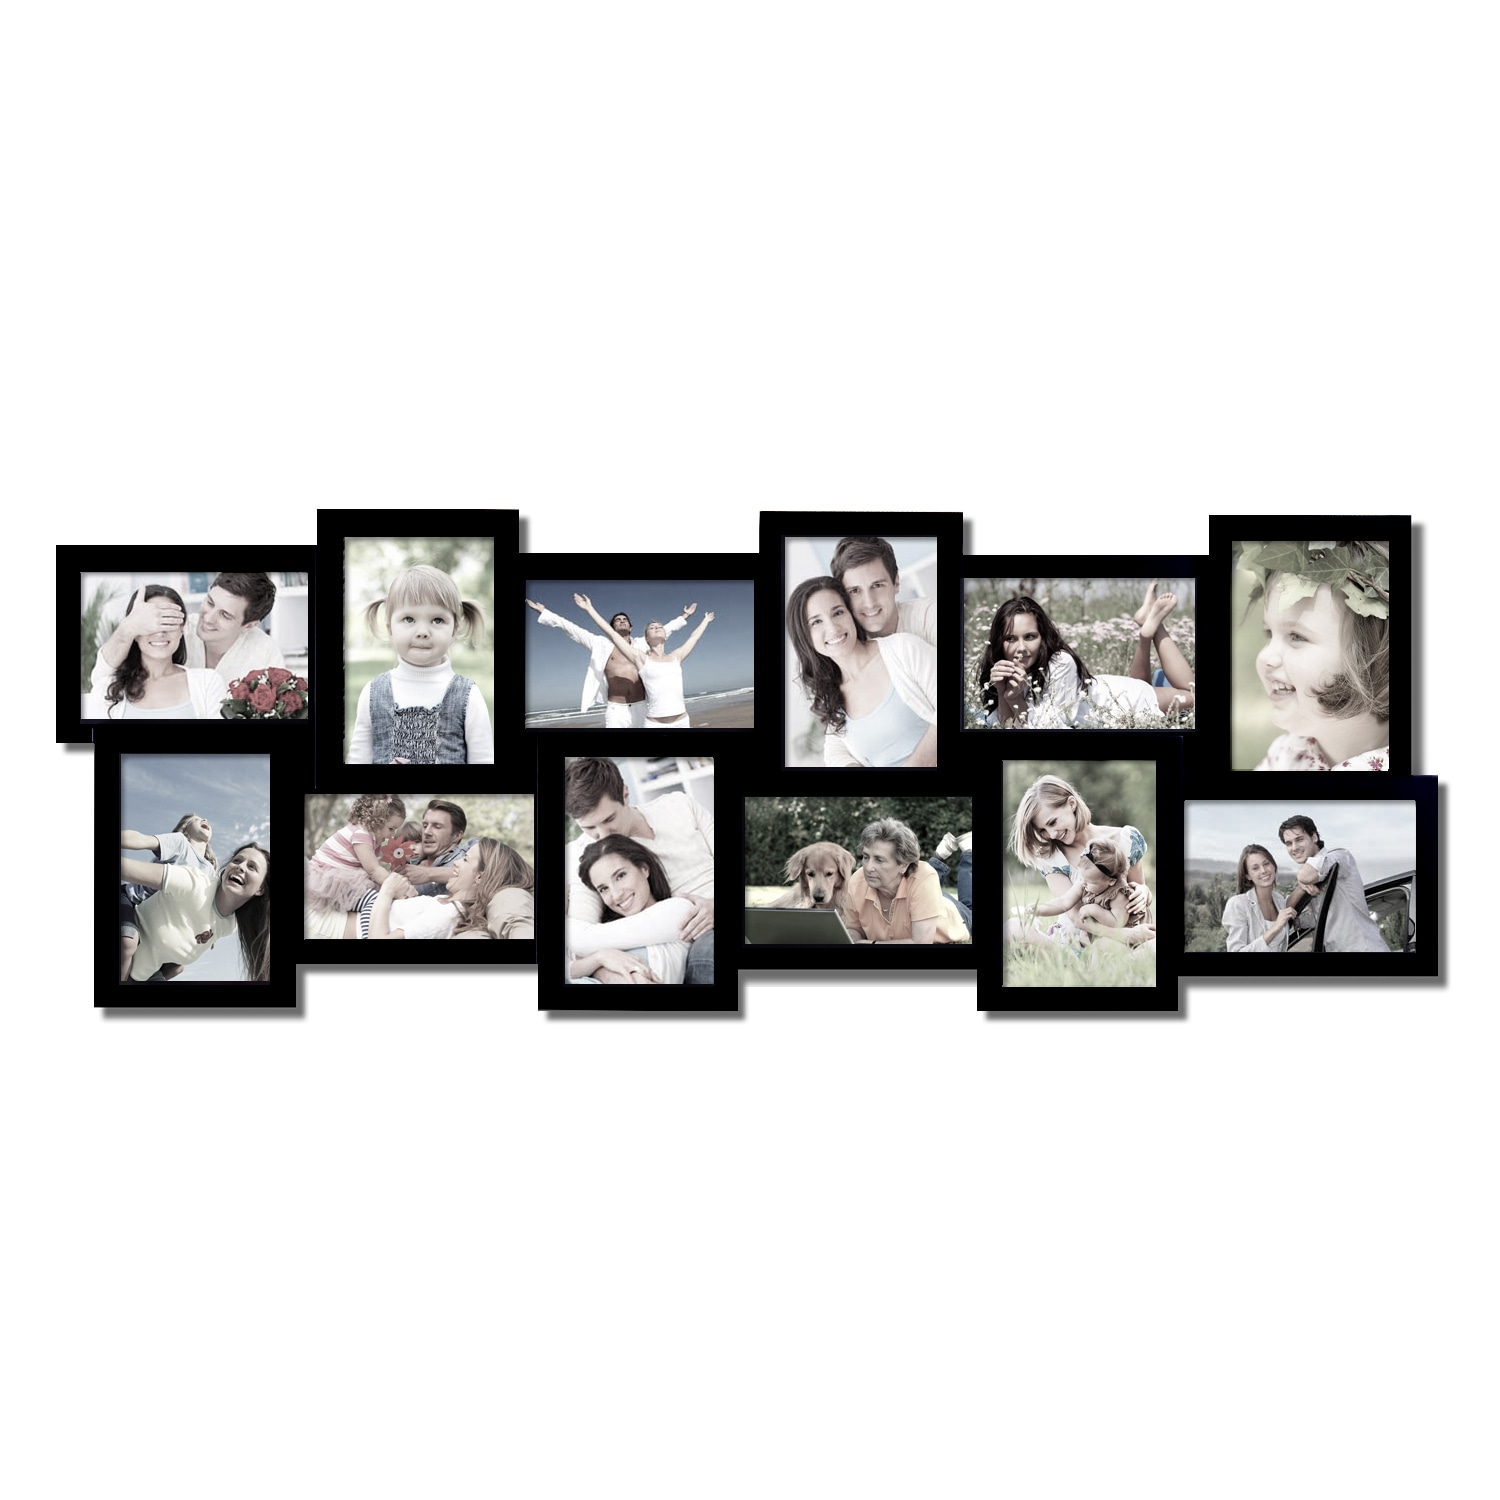 Adeco 12-opening Black Wooden Wall Hanging Collage Photo Frames - Free  Shipping Today - Overstock.com - 16146333